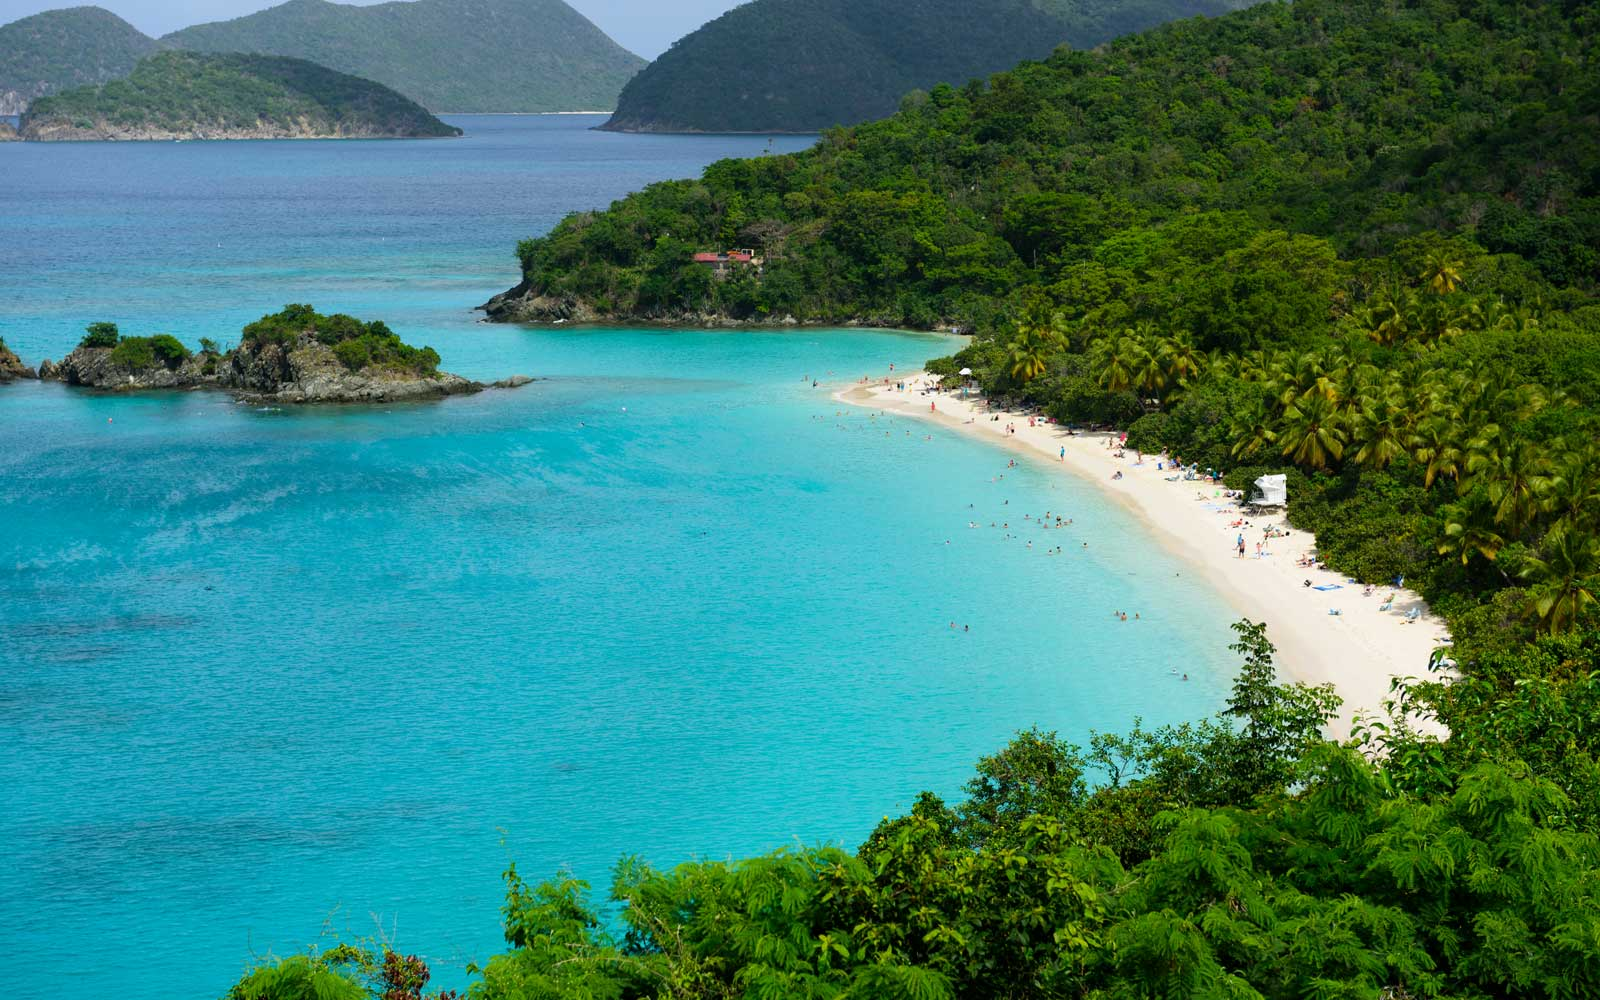 Virgin Islands National Park is home to a variety of beaches that include Trunk Bay.